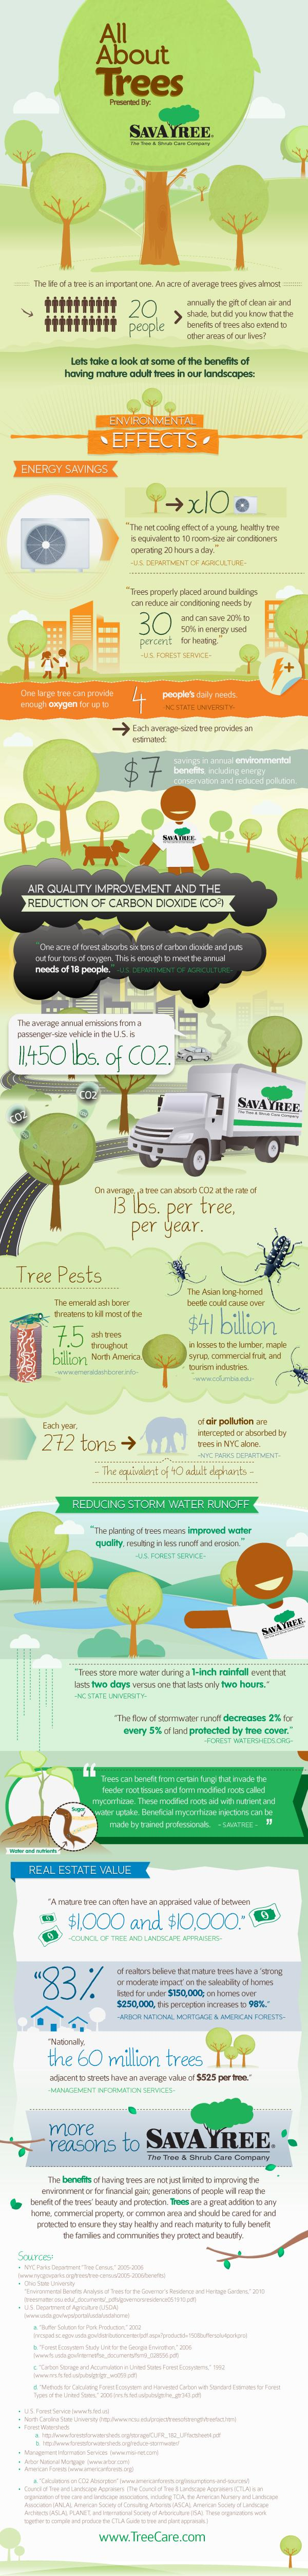 """""""The net cooling effect of a young, healthy tree is equivalent to 10 room-size air conditioners operating 20 hours a day."""" -U.S. Department of Agriculture """"Trees properly placed around buildings can reduce air conditioning needs by 30 percent and can save 20% to 50% in energy used for heating."""" – U.S. Forest Service"""